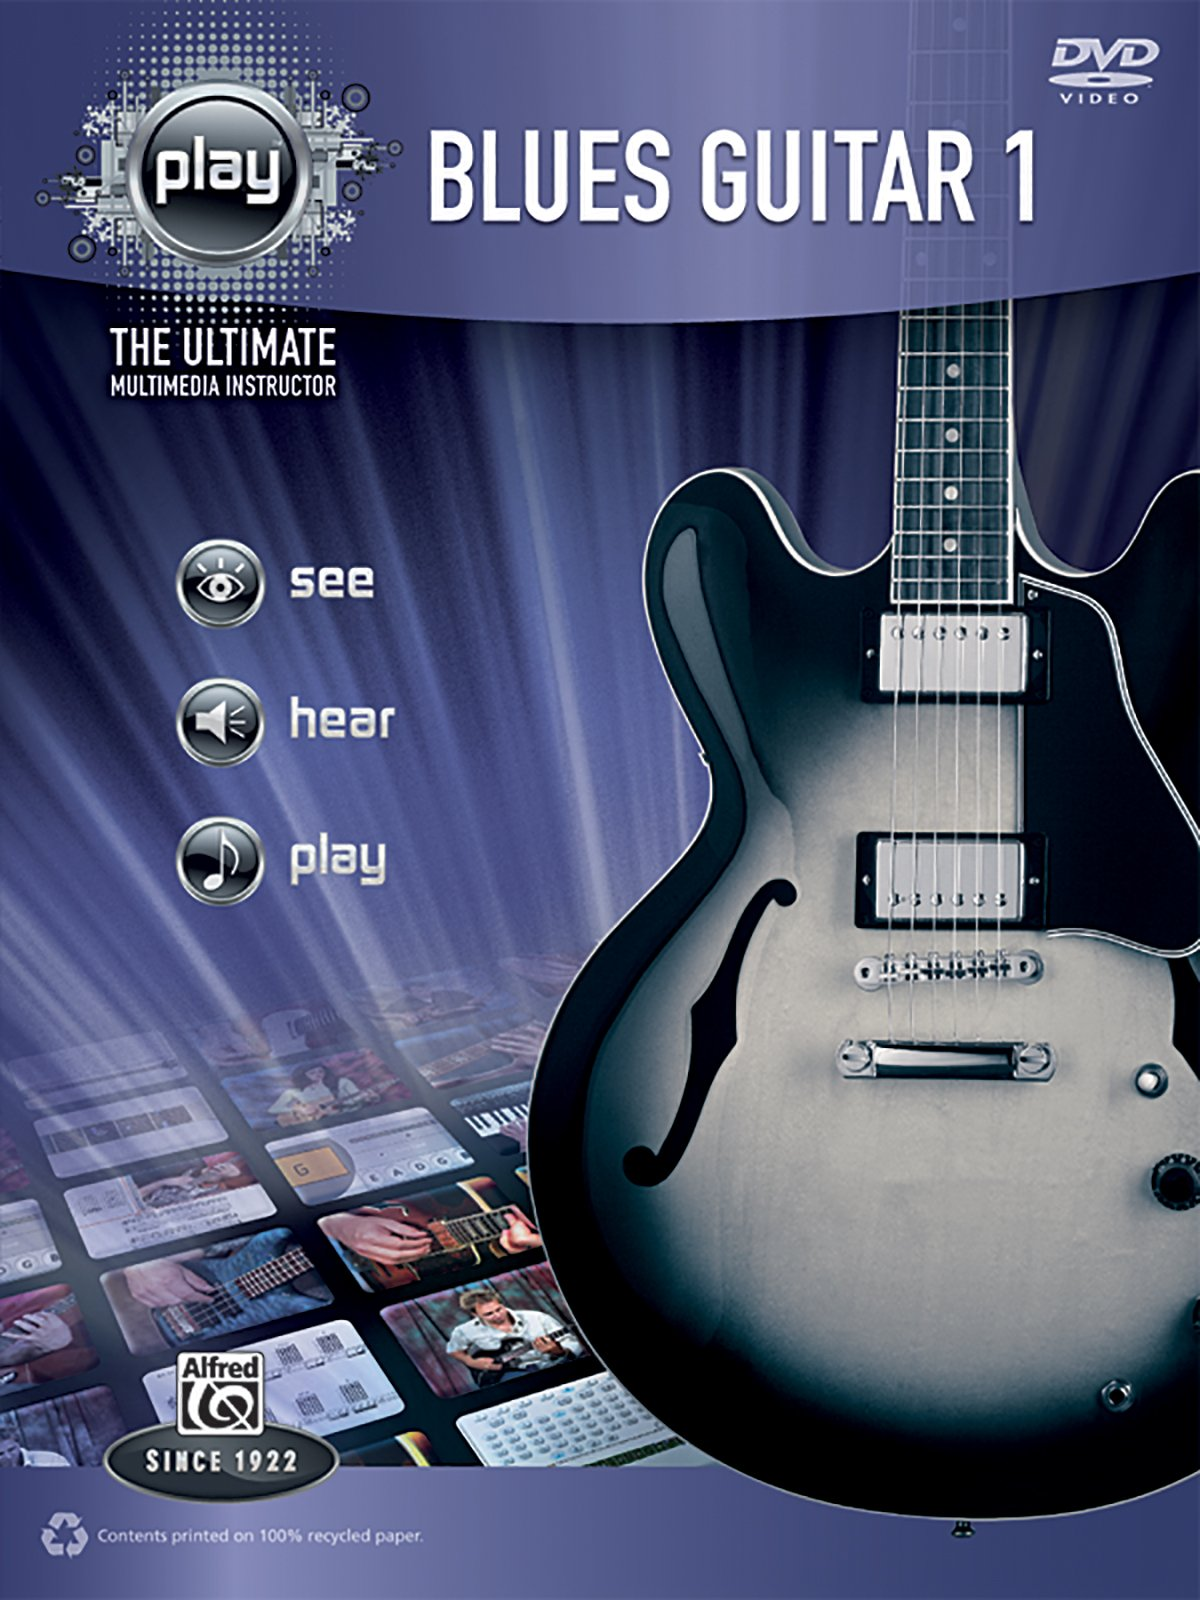 Alfred's PLAY Blues Guitar 1: The Ultimate Multimedia Instructor (Book & DVD) (Alfred's Play Series)